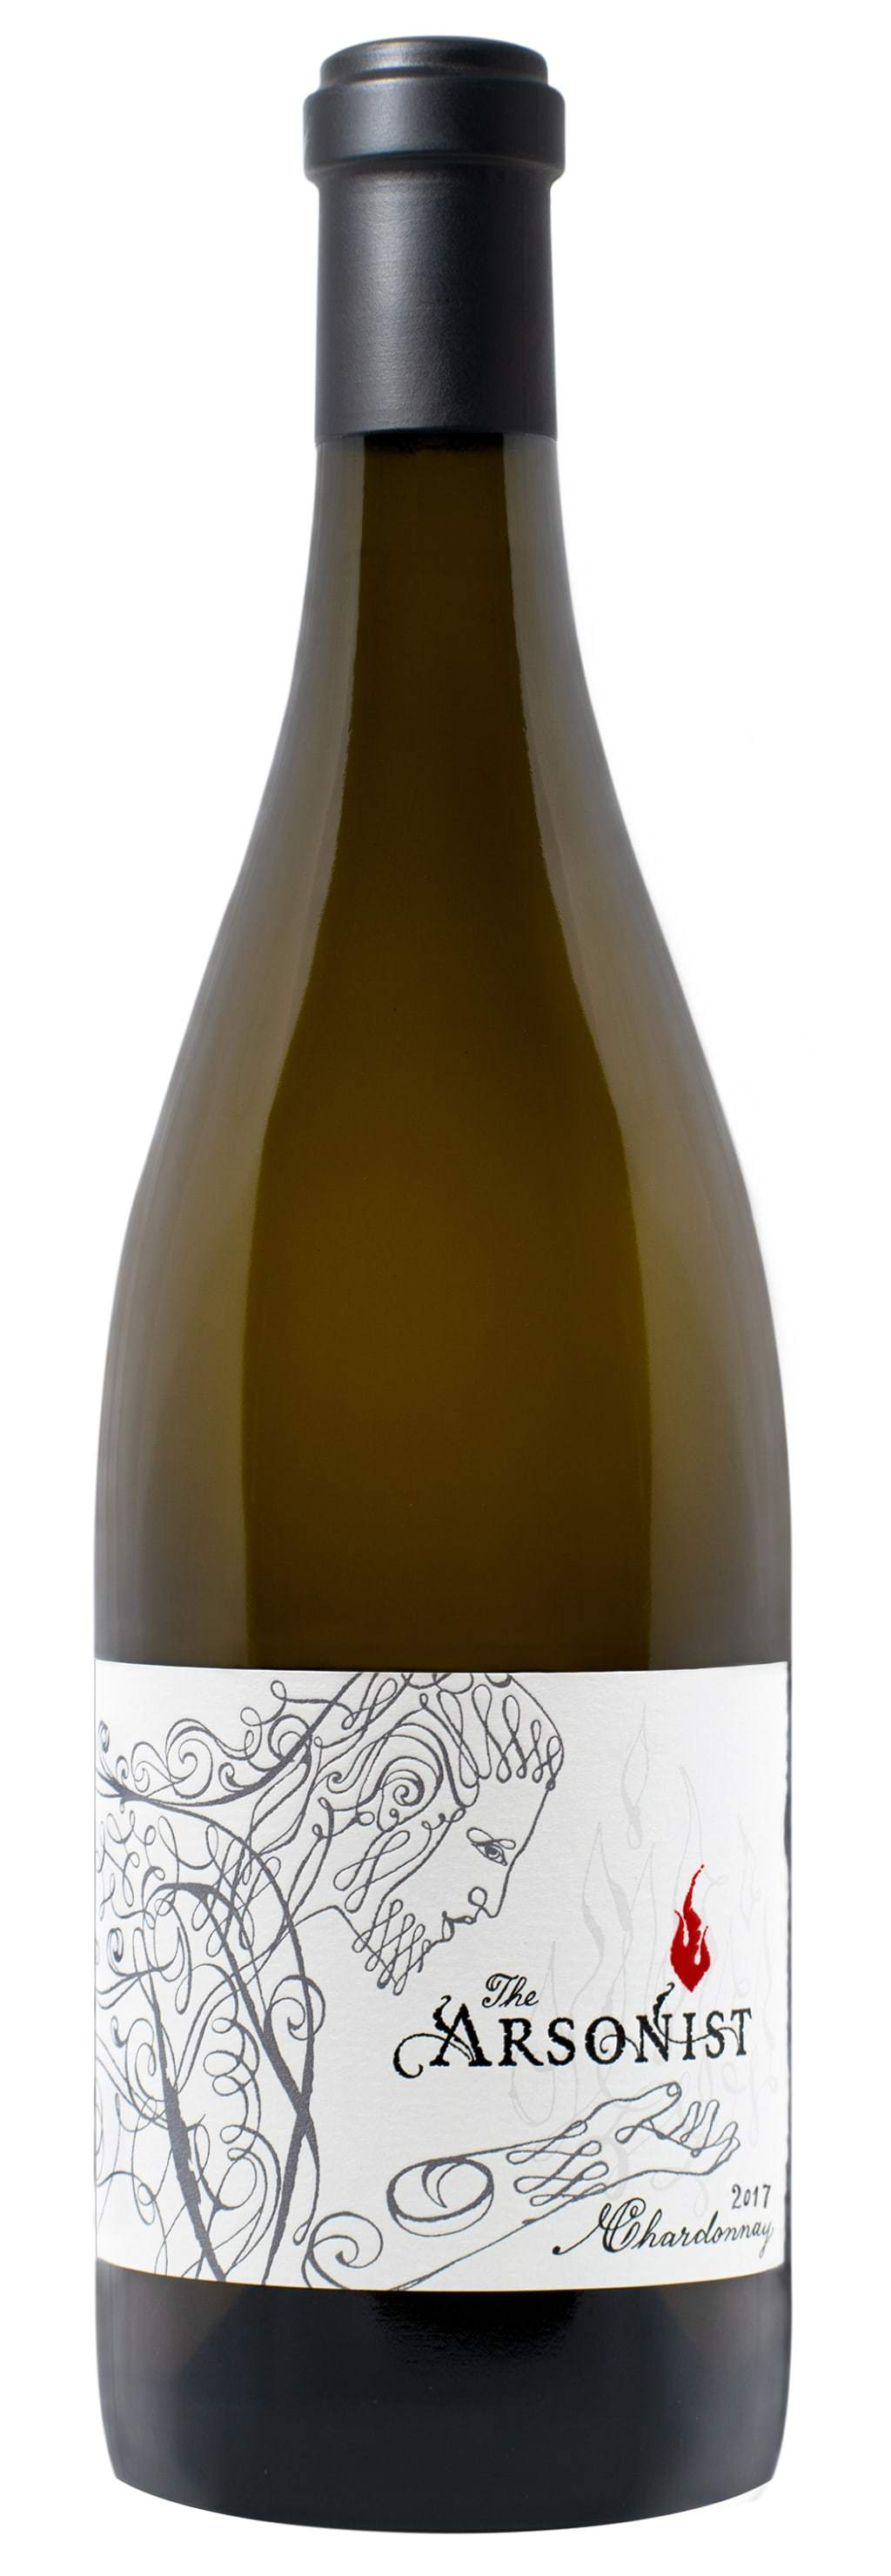 The Arsonist Chardonnay 2017